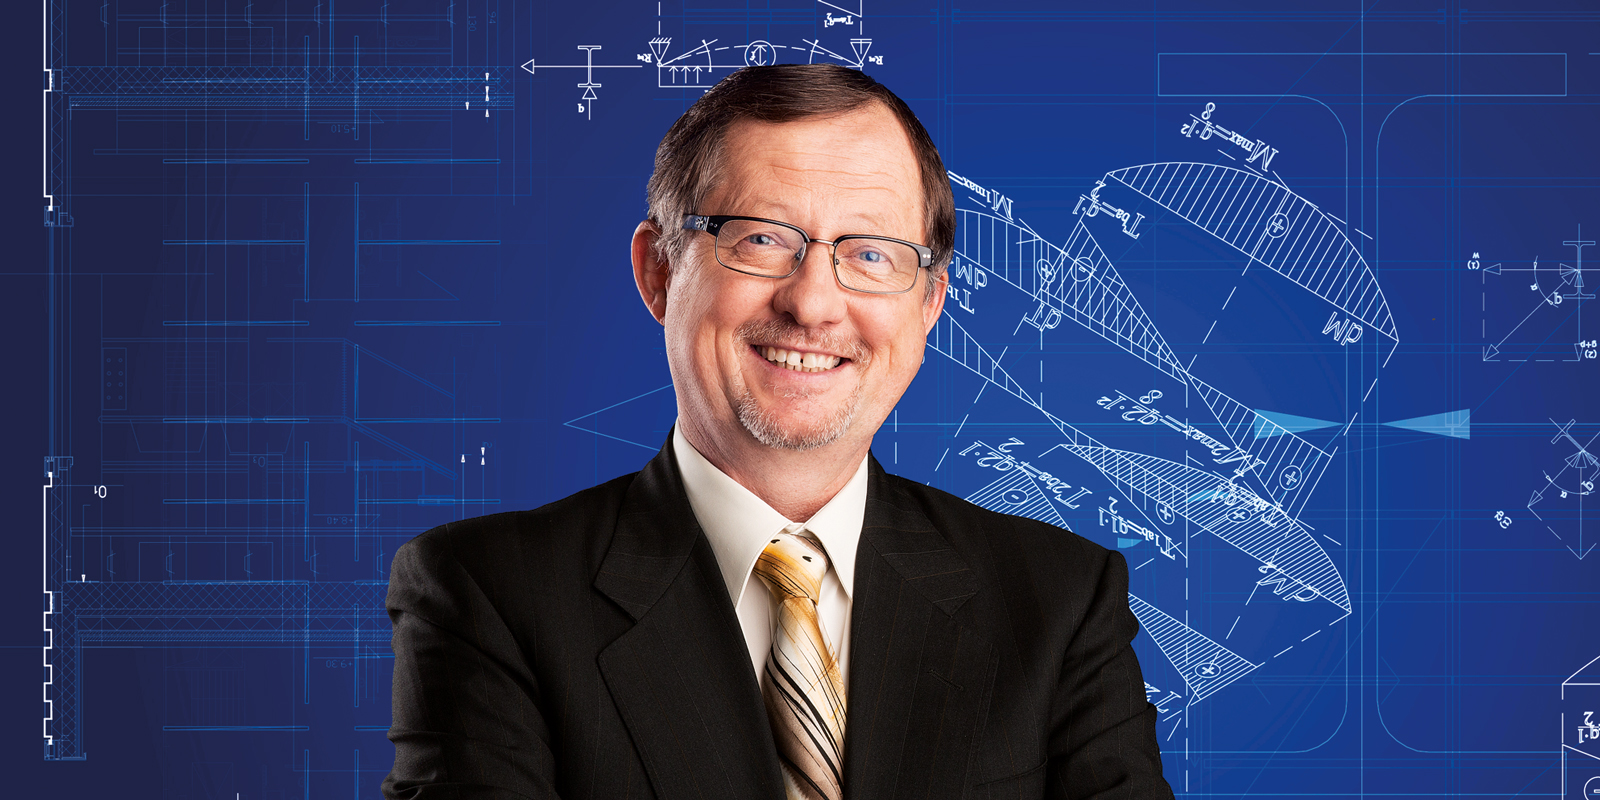 USD engineering dean Chell Roberts